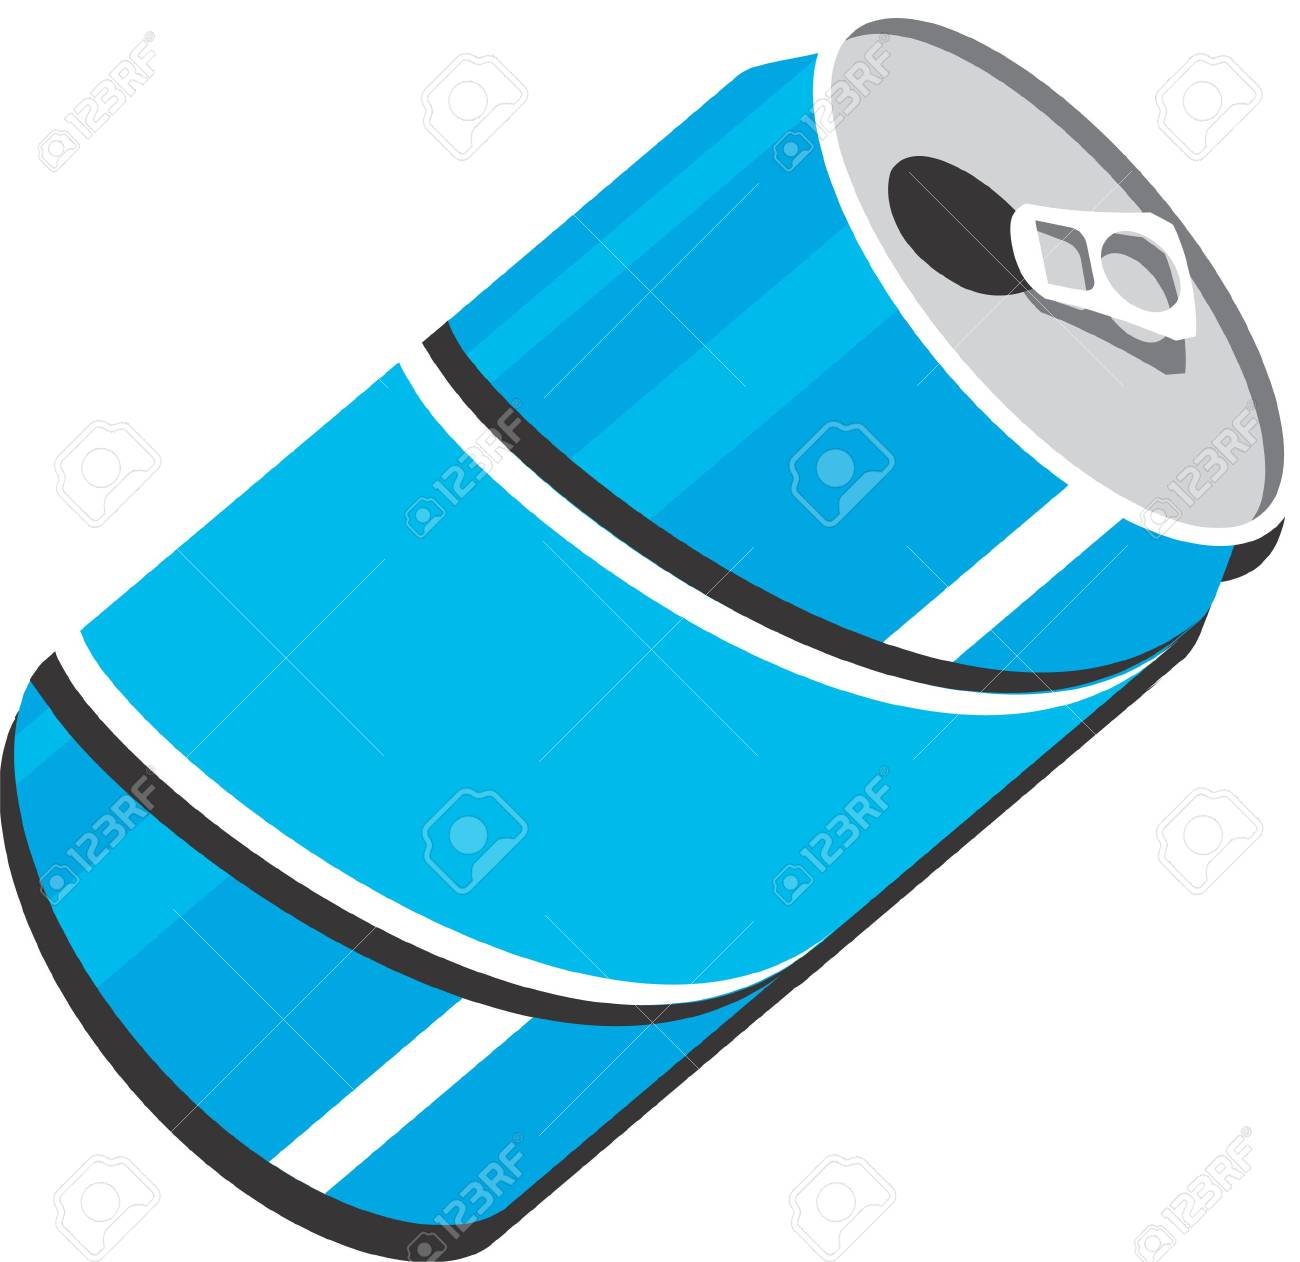 pop soda can clip art design illustration for use in web or print rh 123rf com clipart sofa clip art soda can